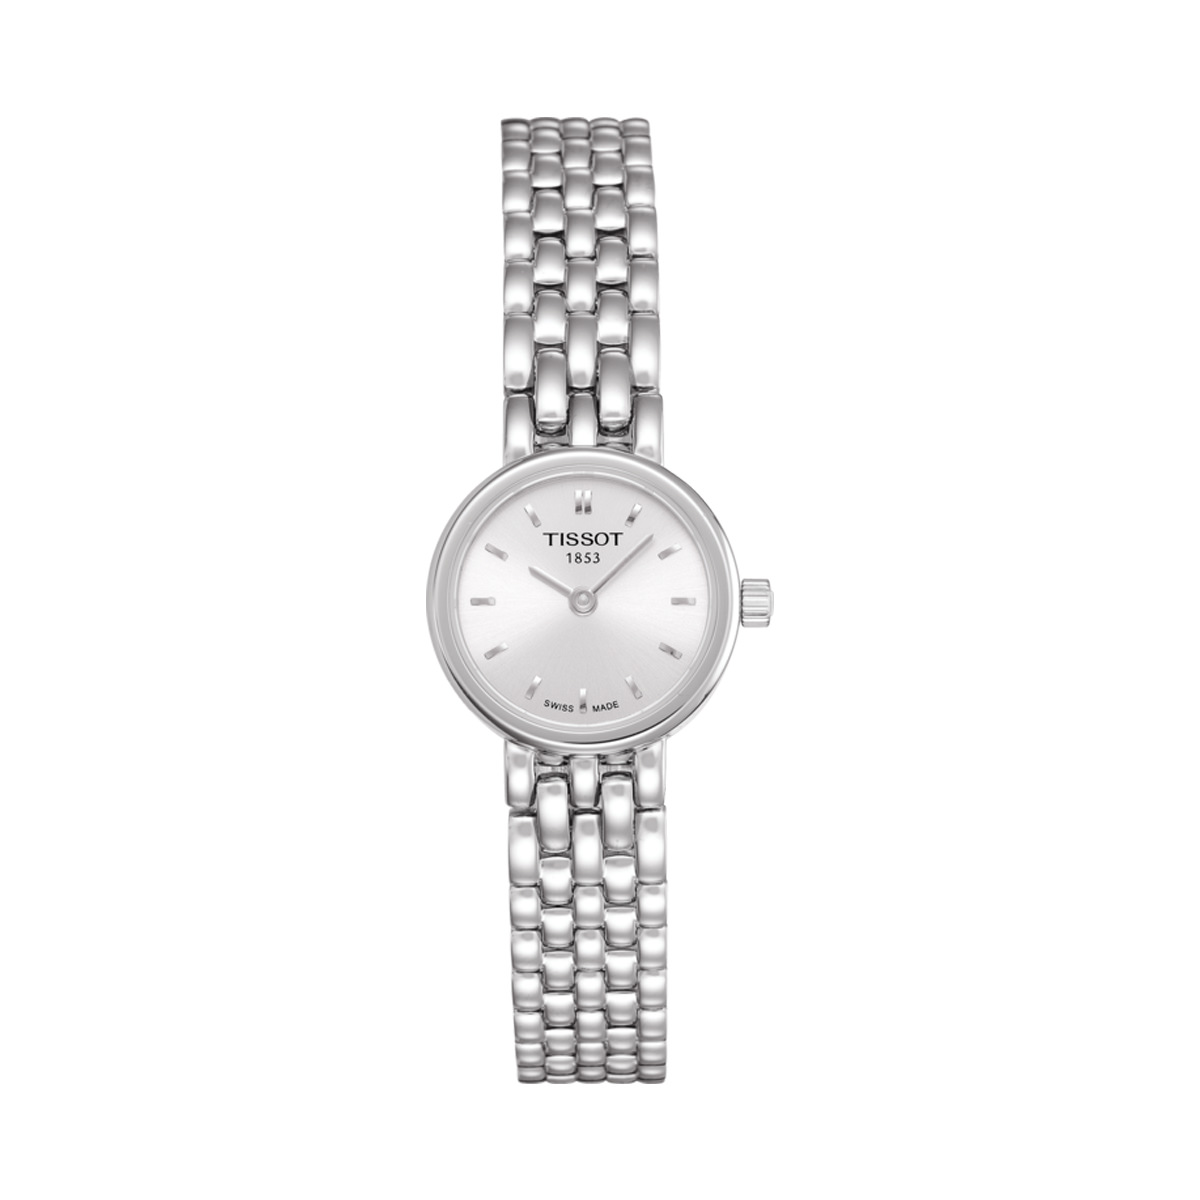 Tissot Lovely Stainless Steel Watch